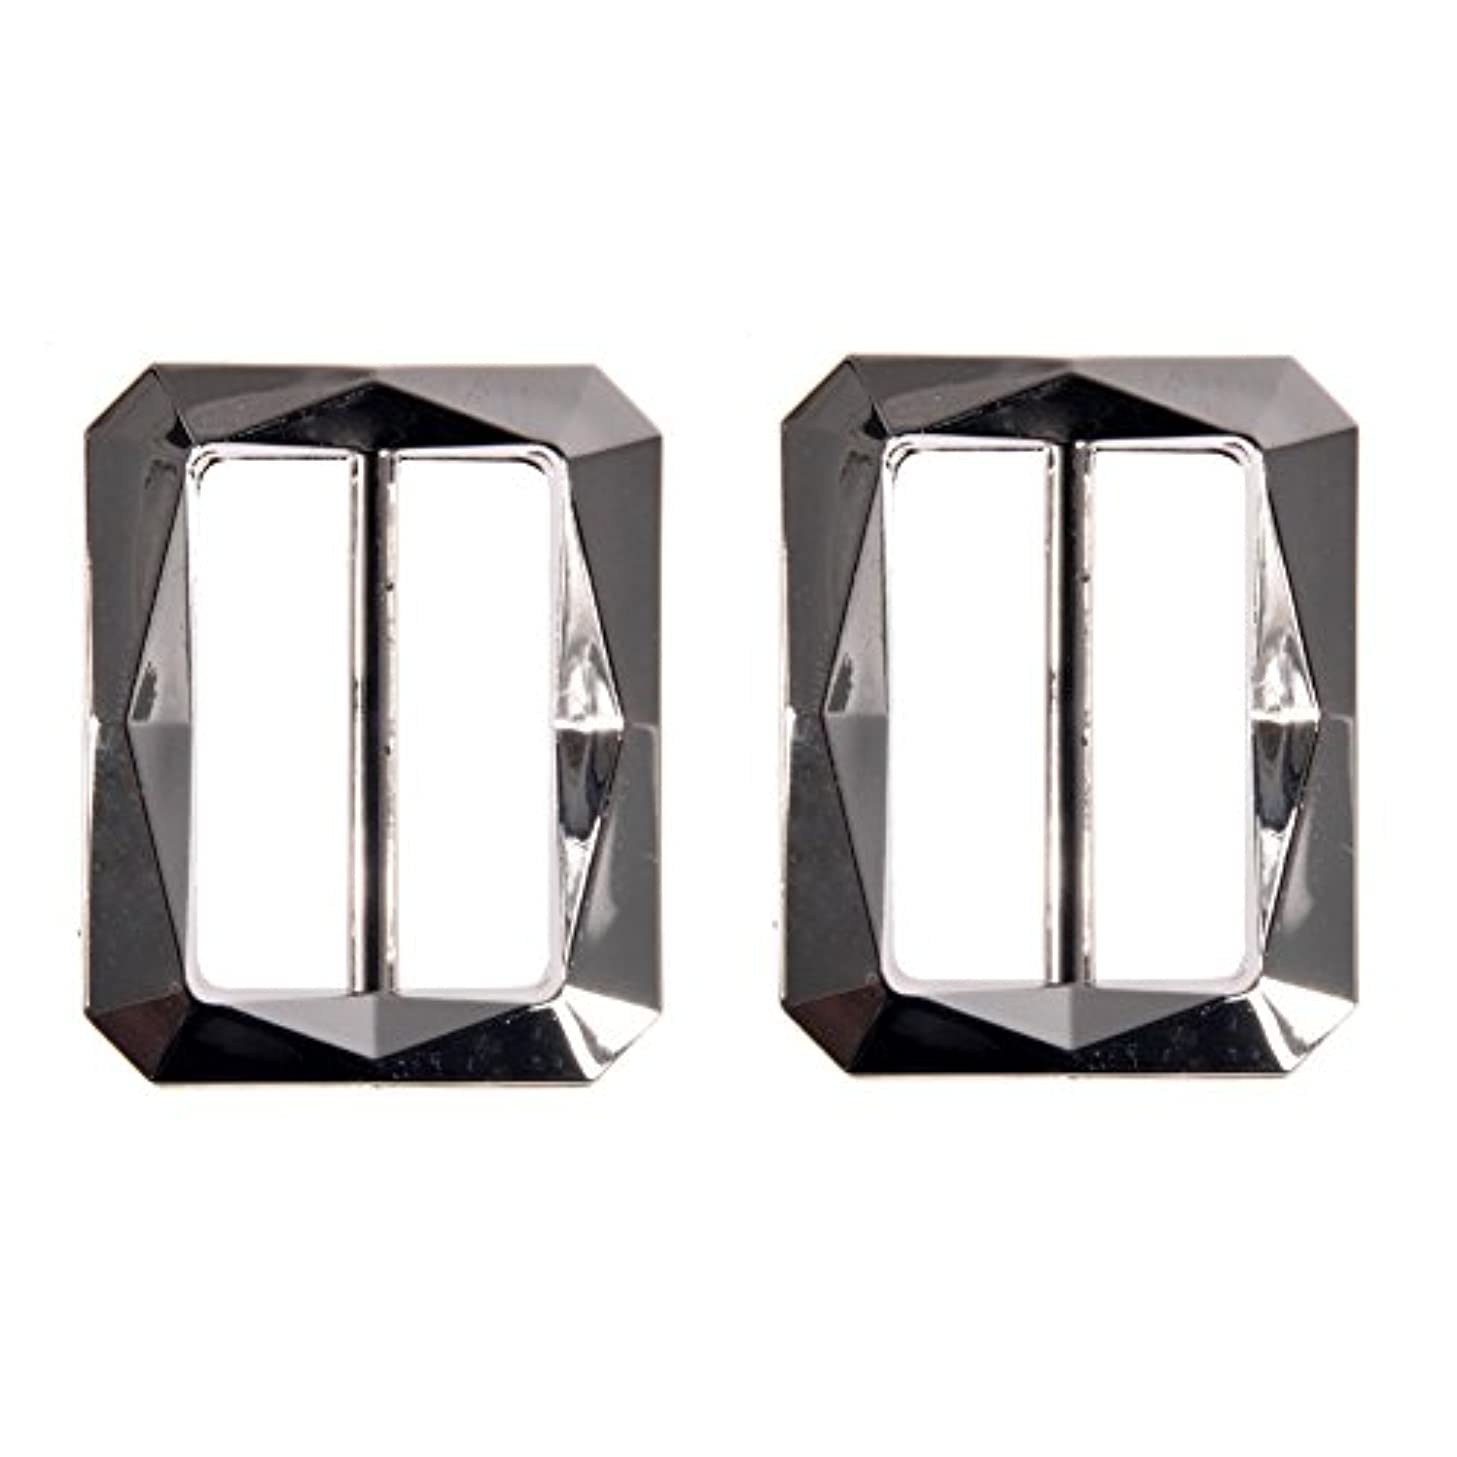 Mibo ABS Metal Plated Buckle Rectangular Faceted Diamond Cut Design 30mm Inside Bar Nikel 2 Pack